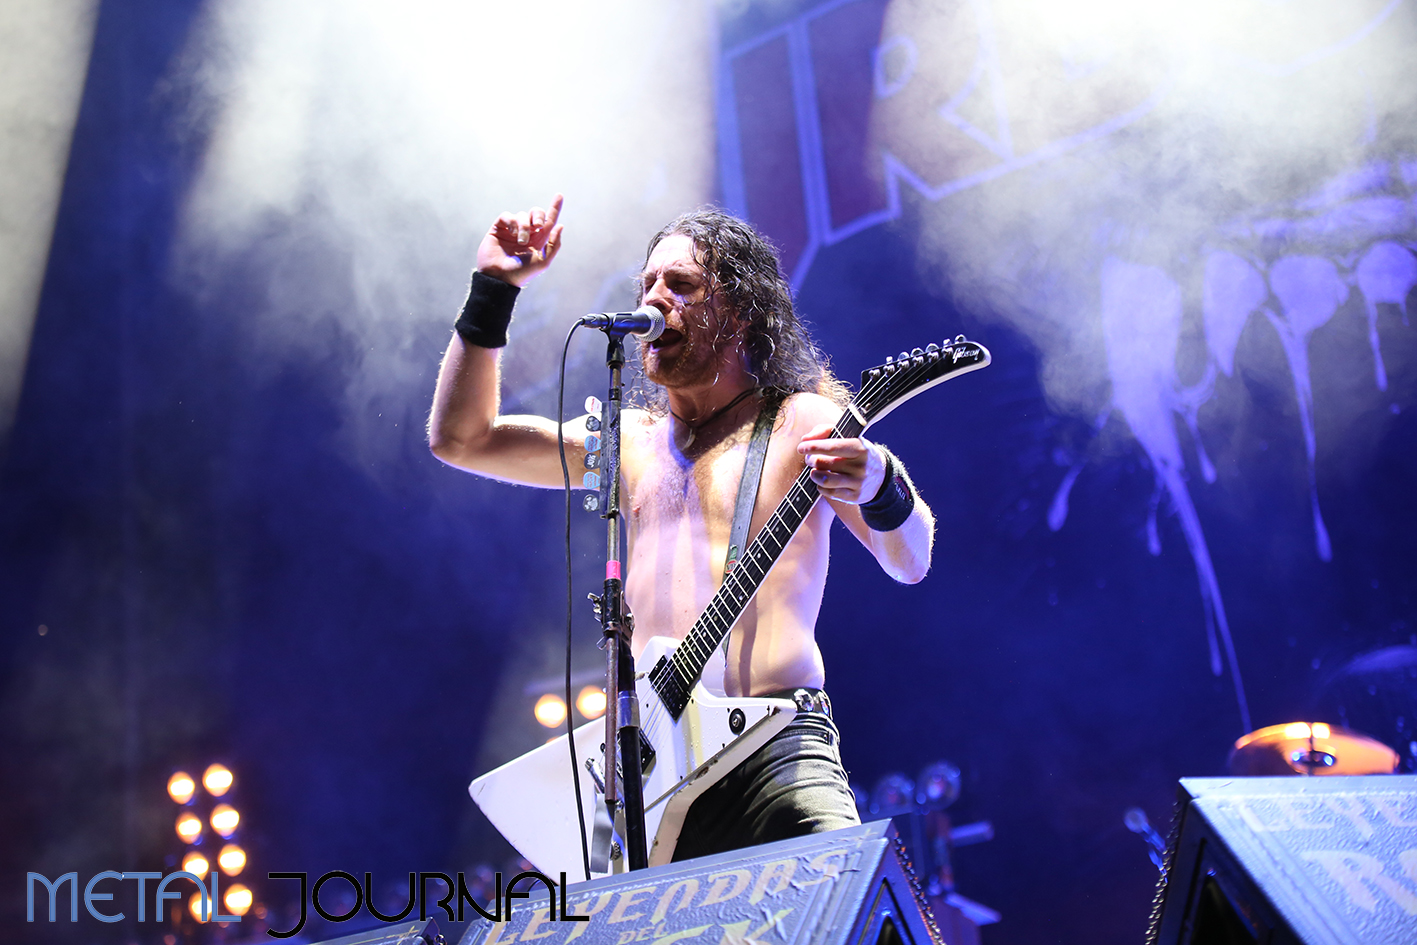 airbourne - leyendas del rock 2019 metal journal pic 1